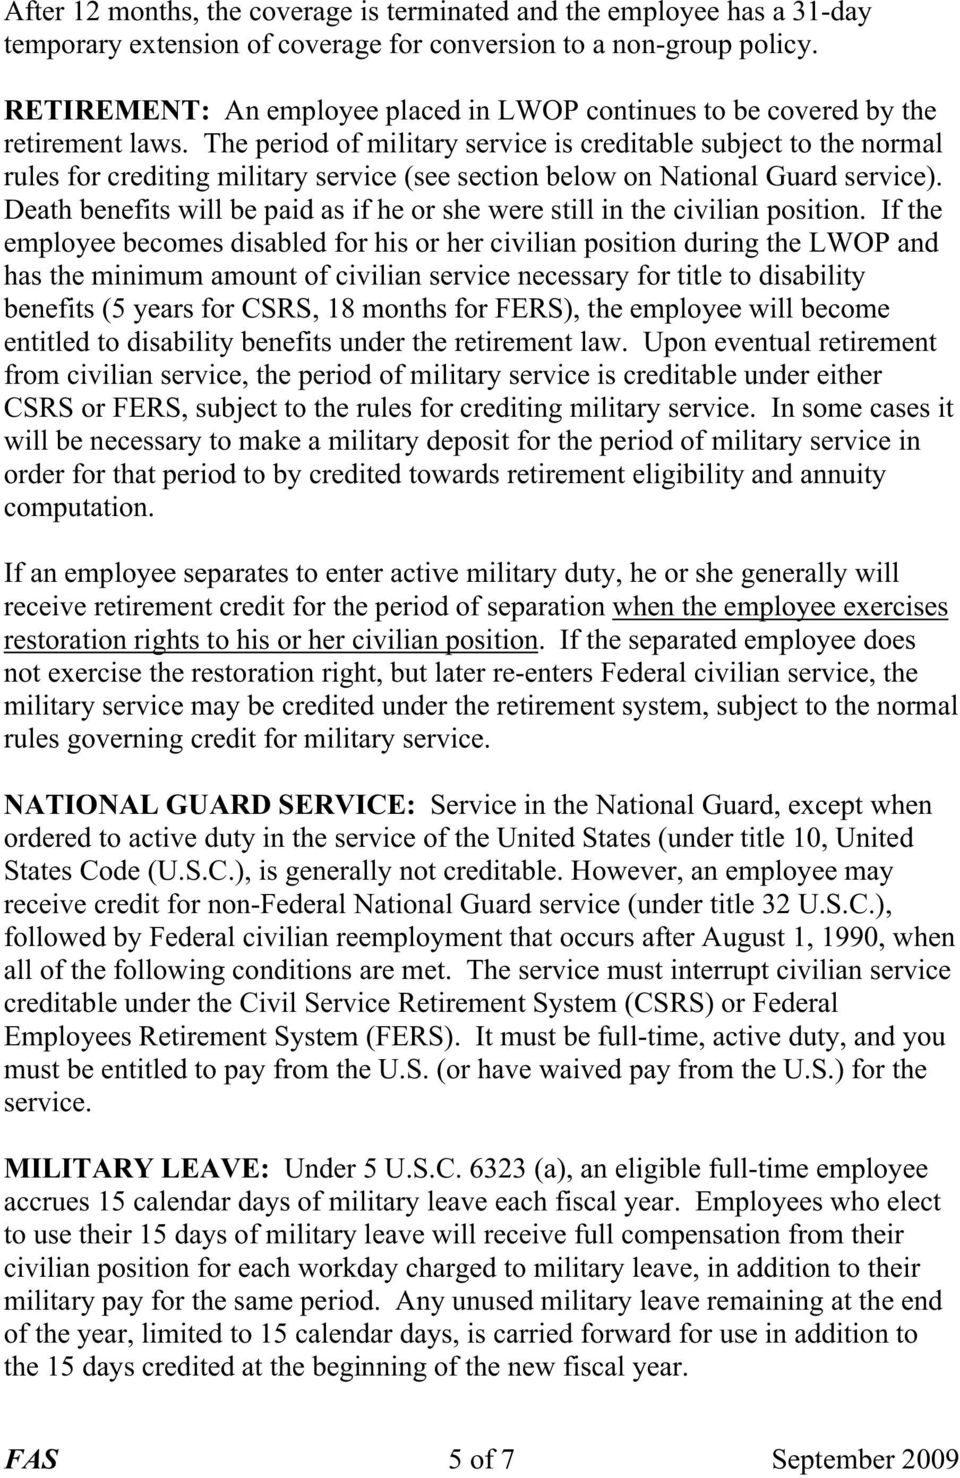 The period of military service is creditable subject to the normal rules for crediting military service (see section below on National Guard service).